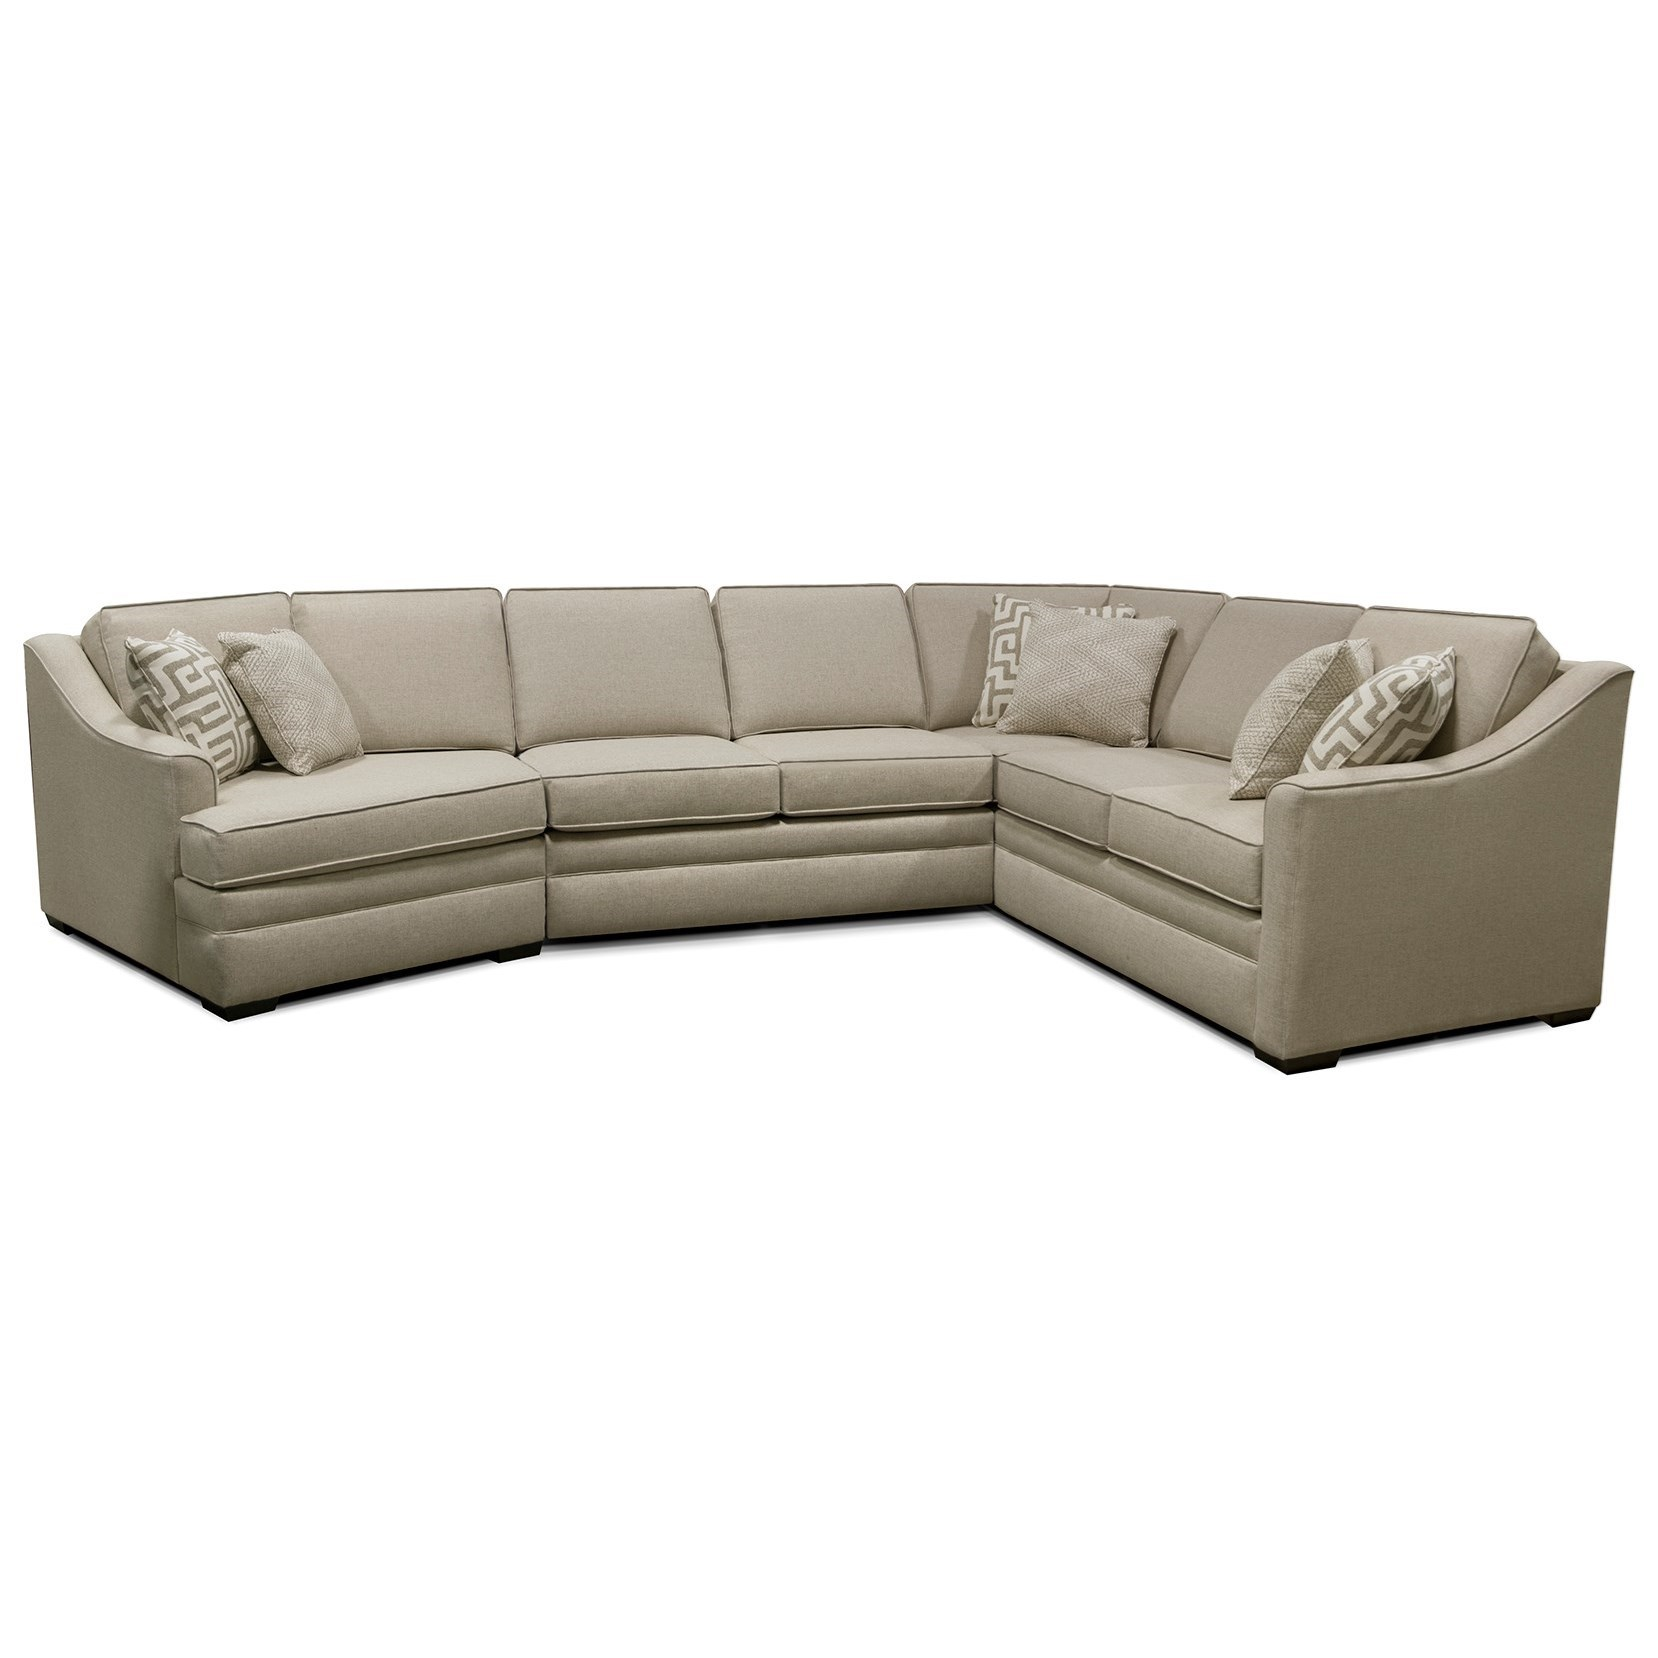 England Thomas Sectional Sofa with Five Seats - Item Number: 4T00-94+43+22+27